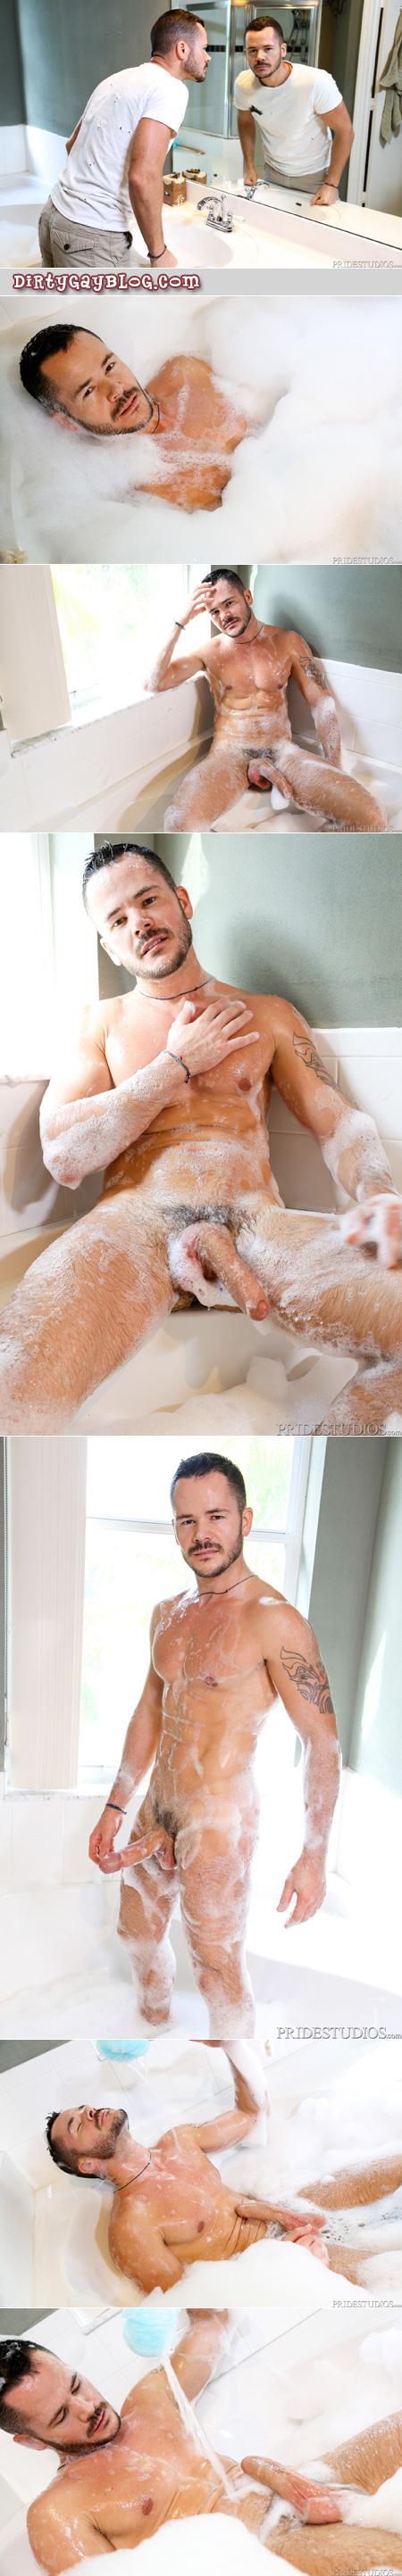 Hungarian man with a giant uncut cock masturbating in a bubble bath.